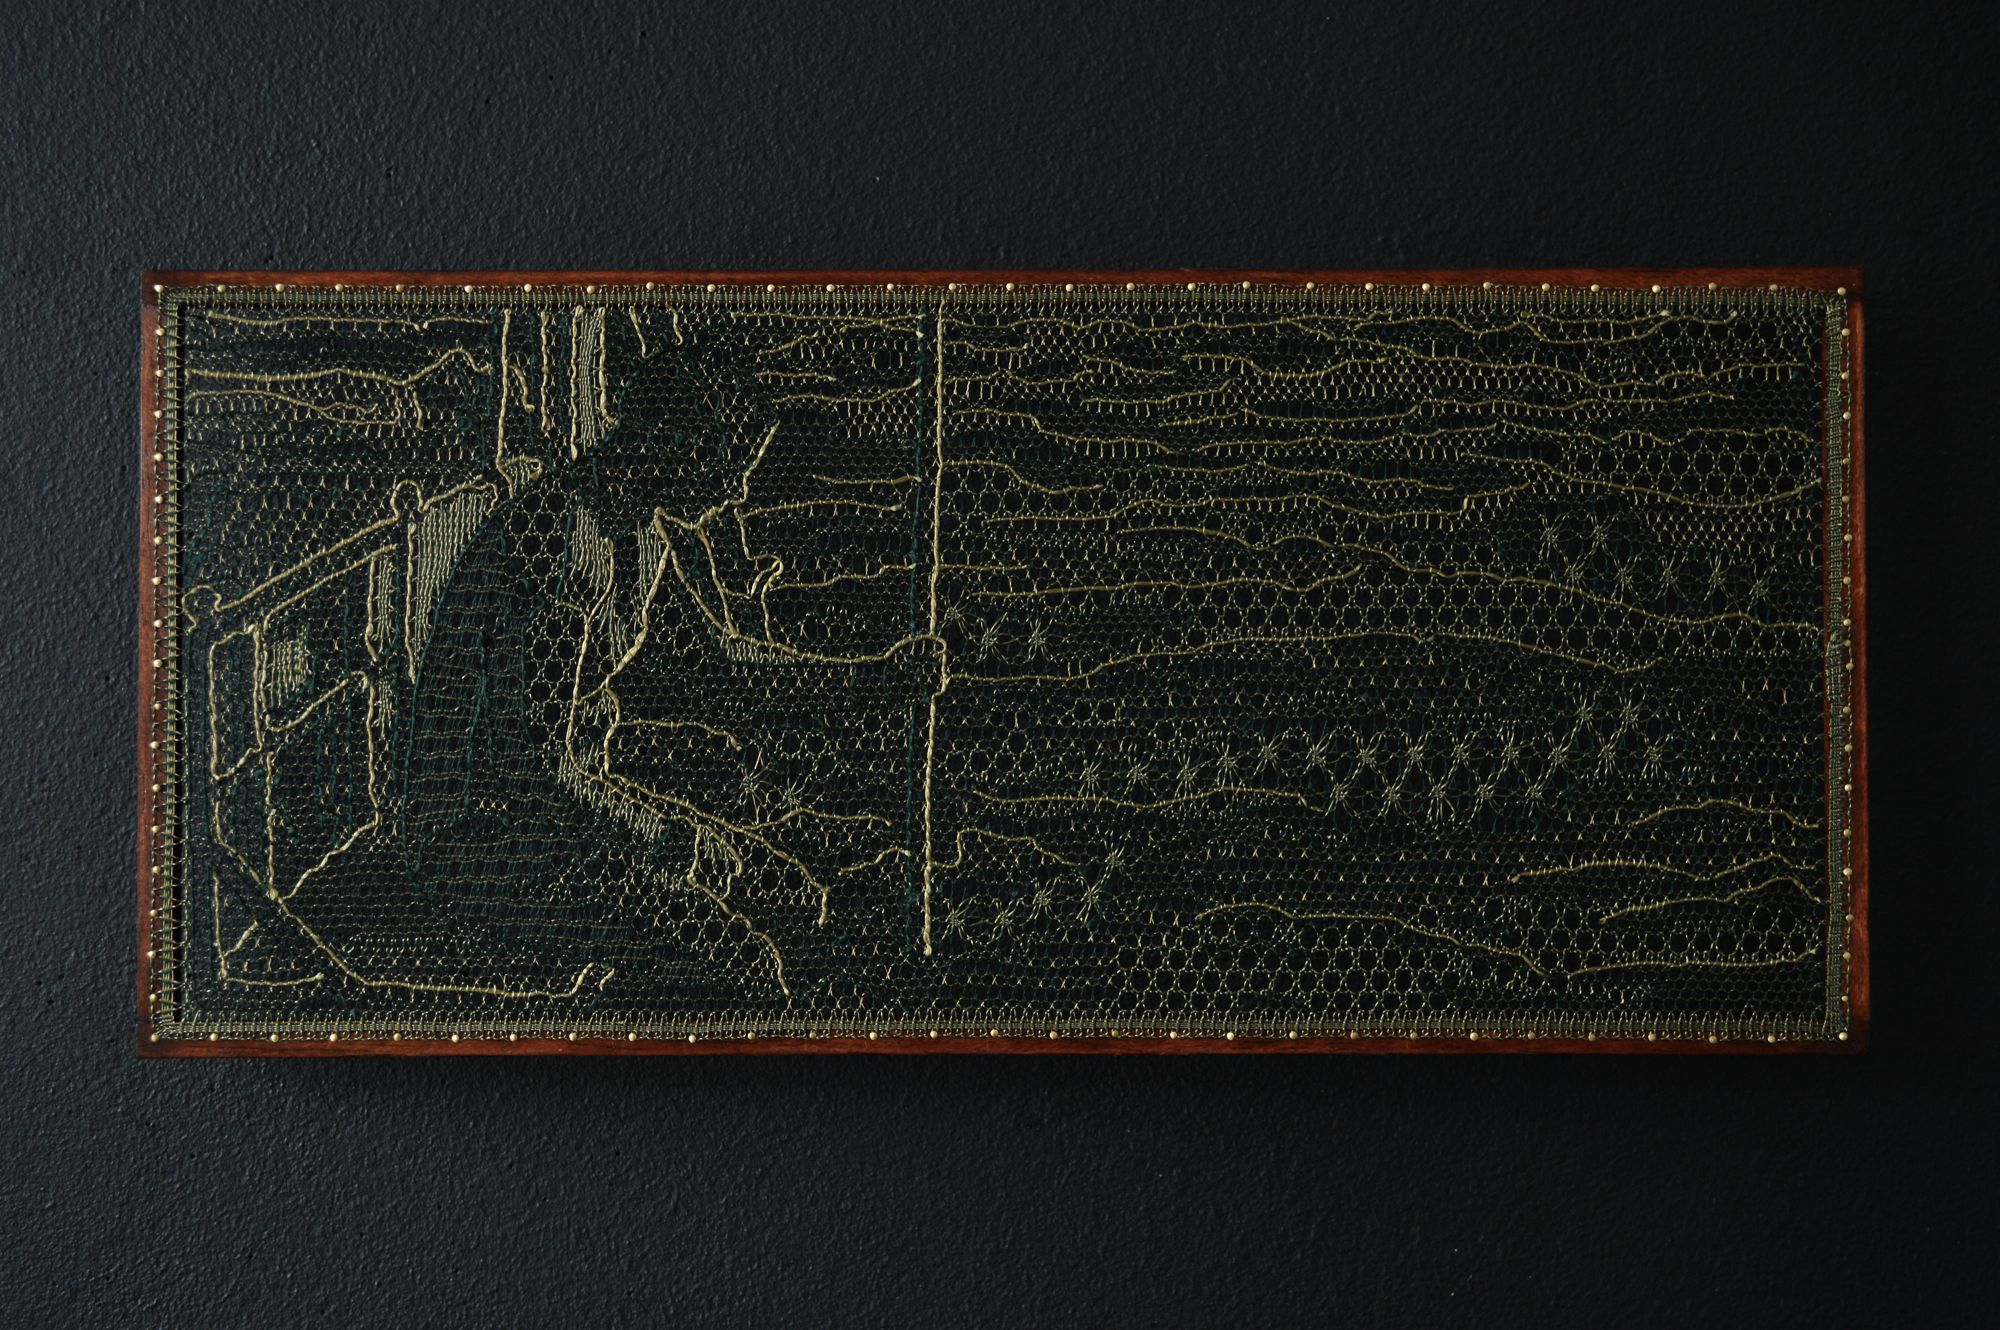 Pierre Fouché . James. 2015. Silk floss, wood, brass pins. 144 x 328mm. Private collection.